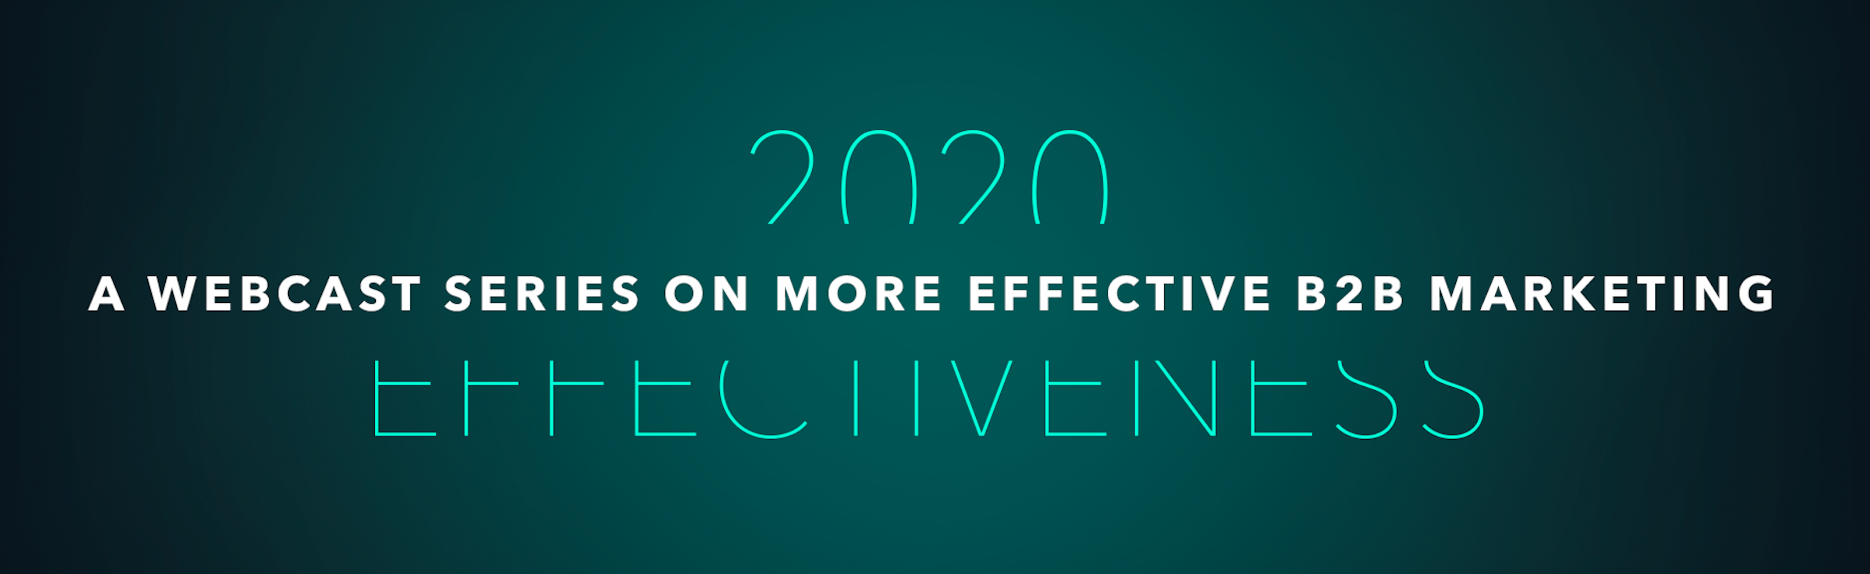 2020 Effectiveness: A webcast series on more effective B2B marketing